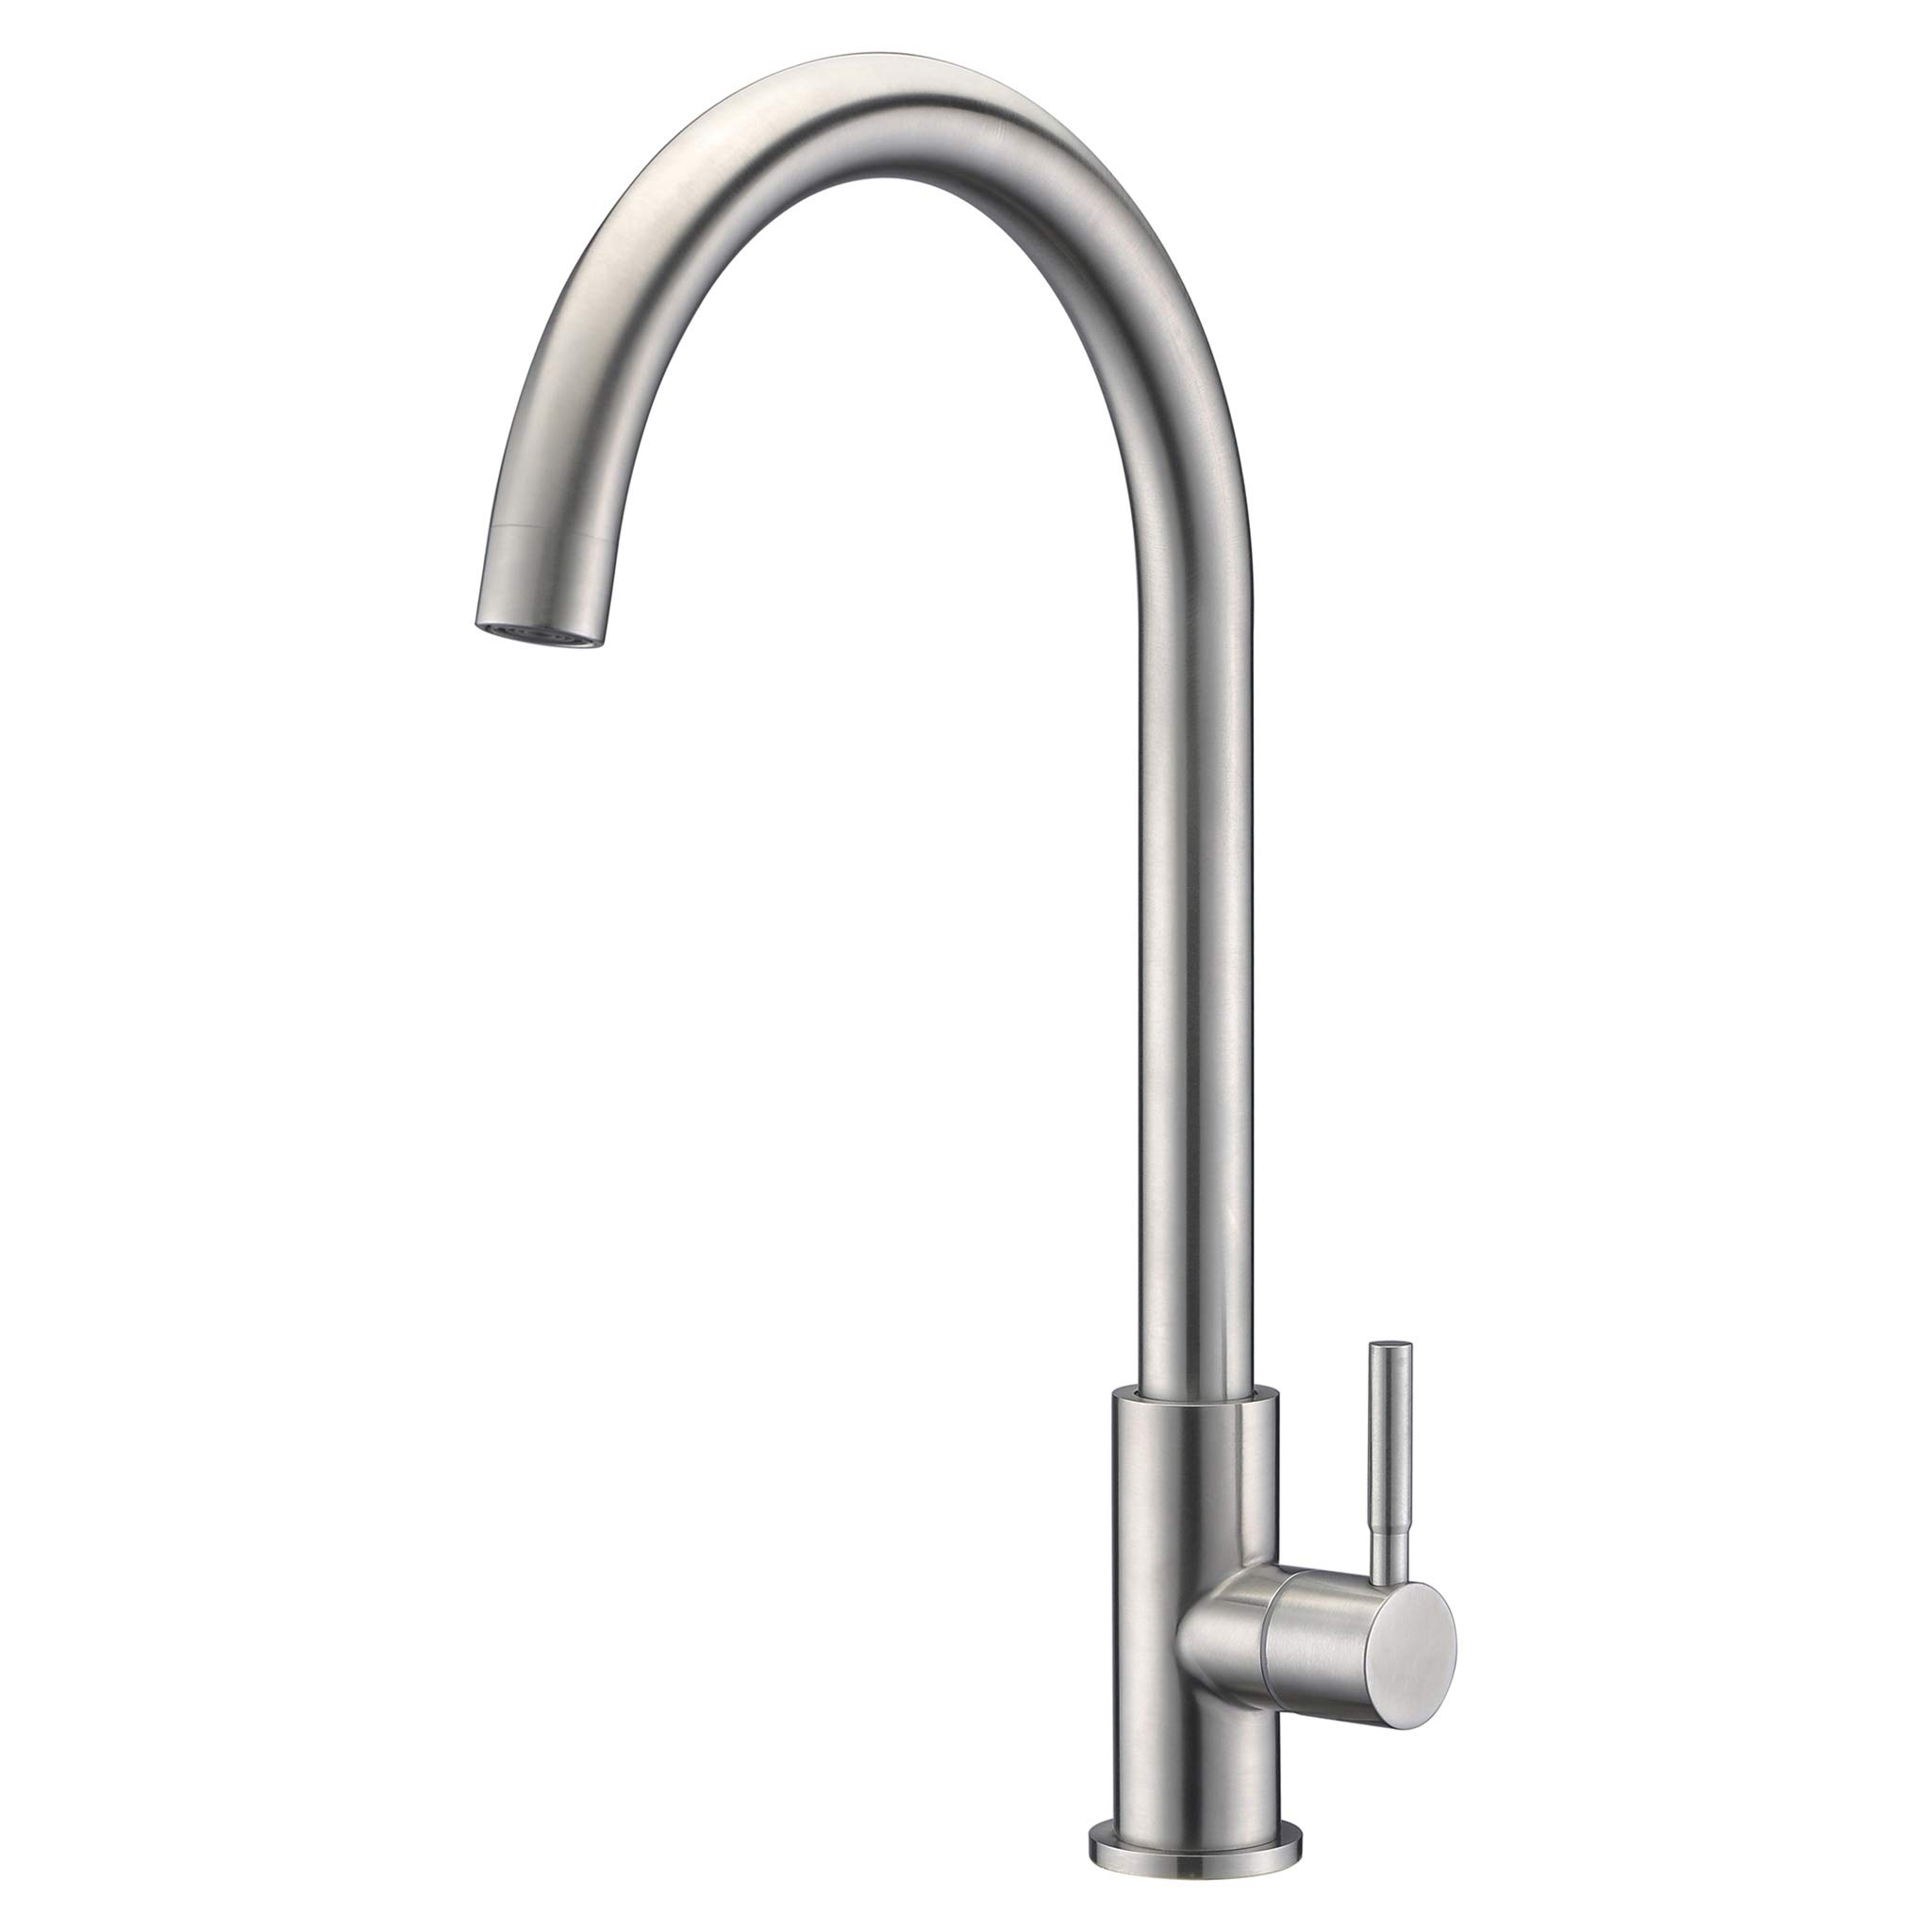 HUASONG Home Simple Basic Single Function Brushed Nickel 304 Stainless Steel Kitchen Sink Faucet, Solid Construction For Cold Water Only